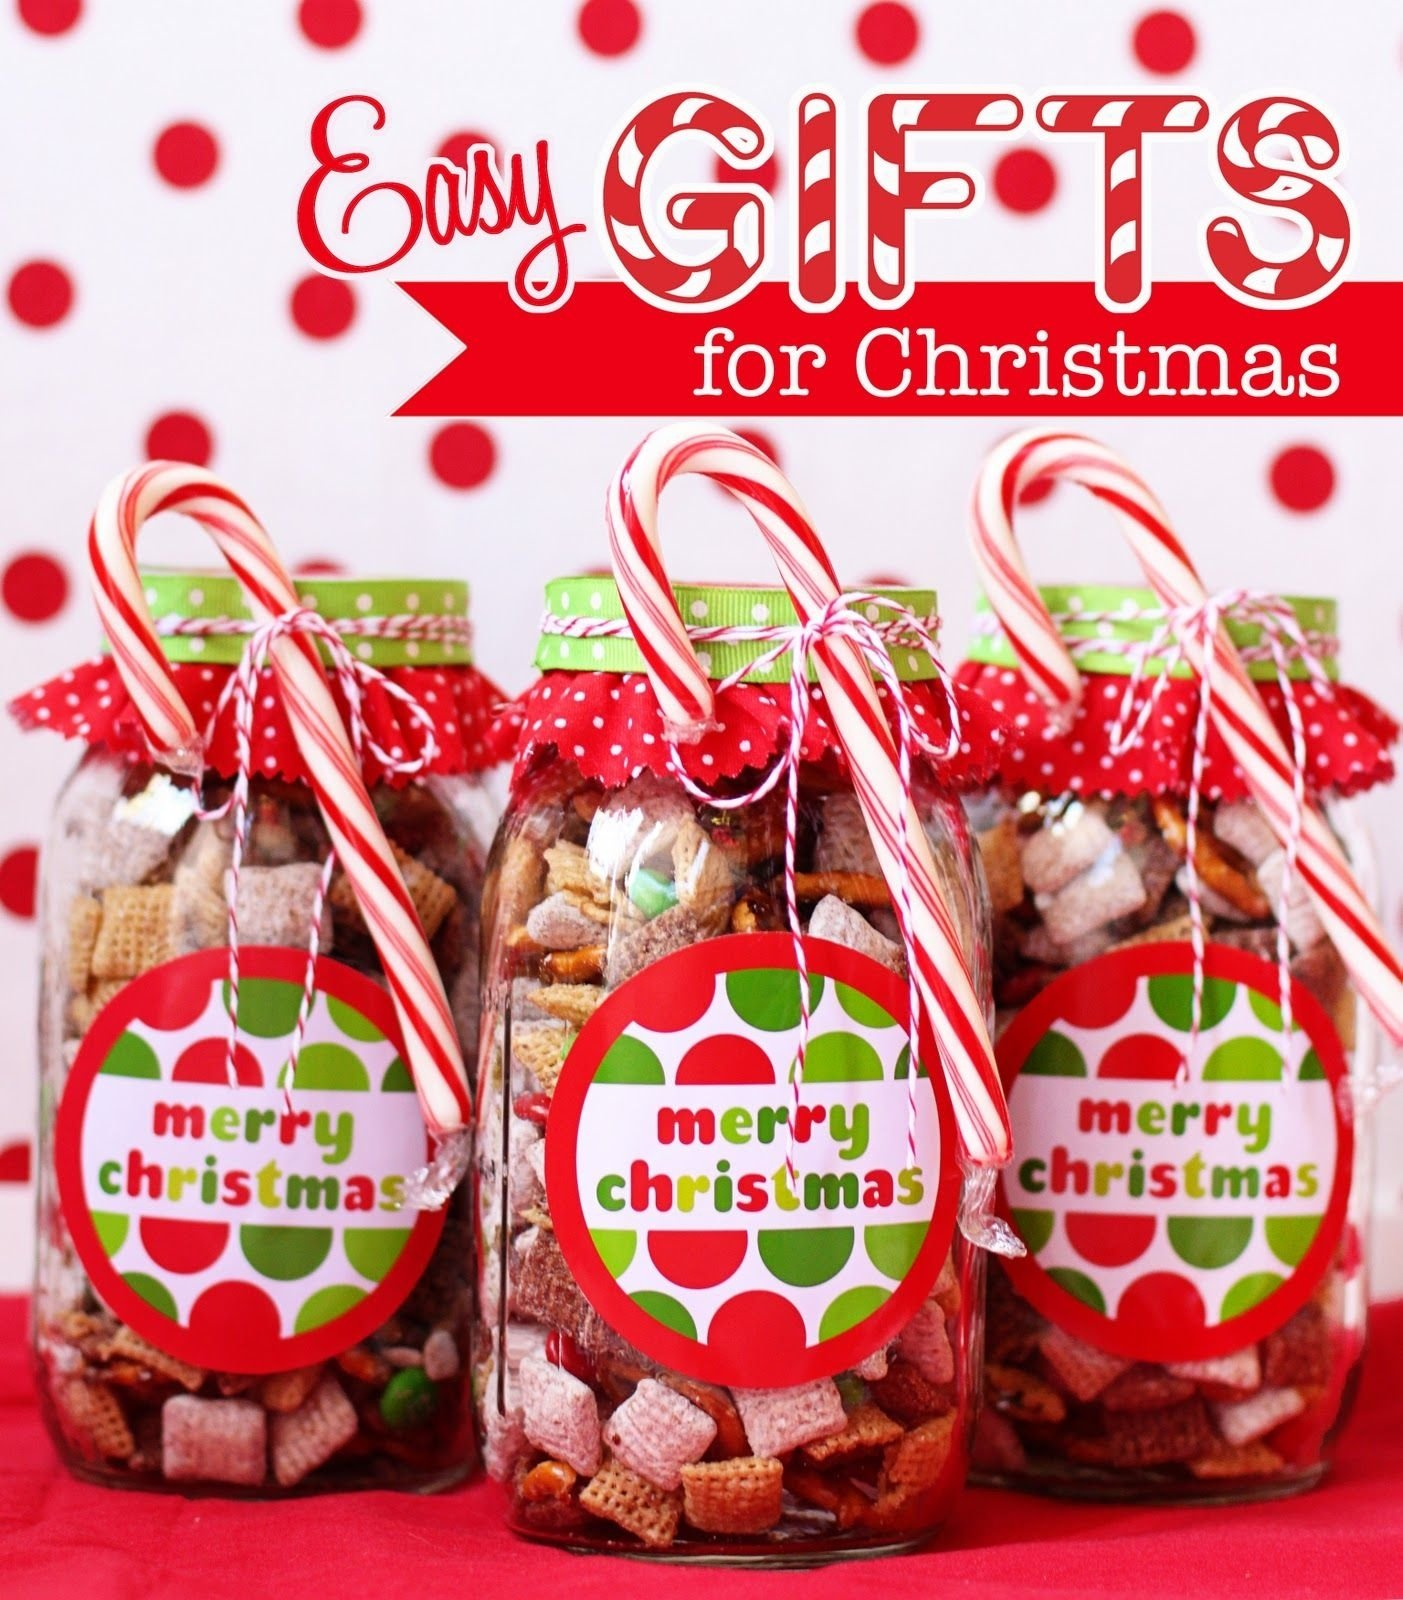 25 edible neighbor gifts | chex mix recipes, chex mix and merry